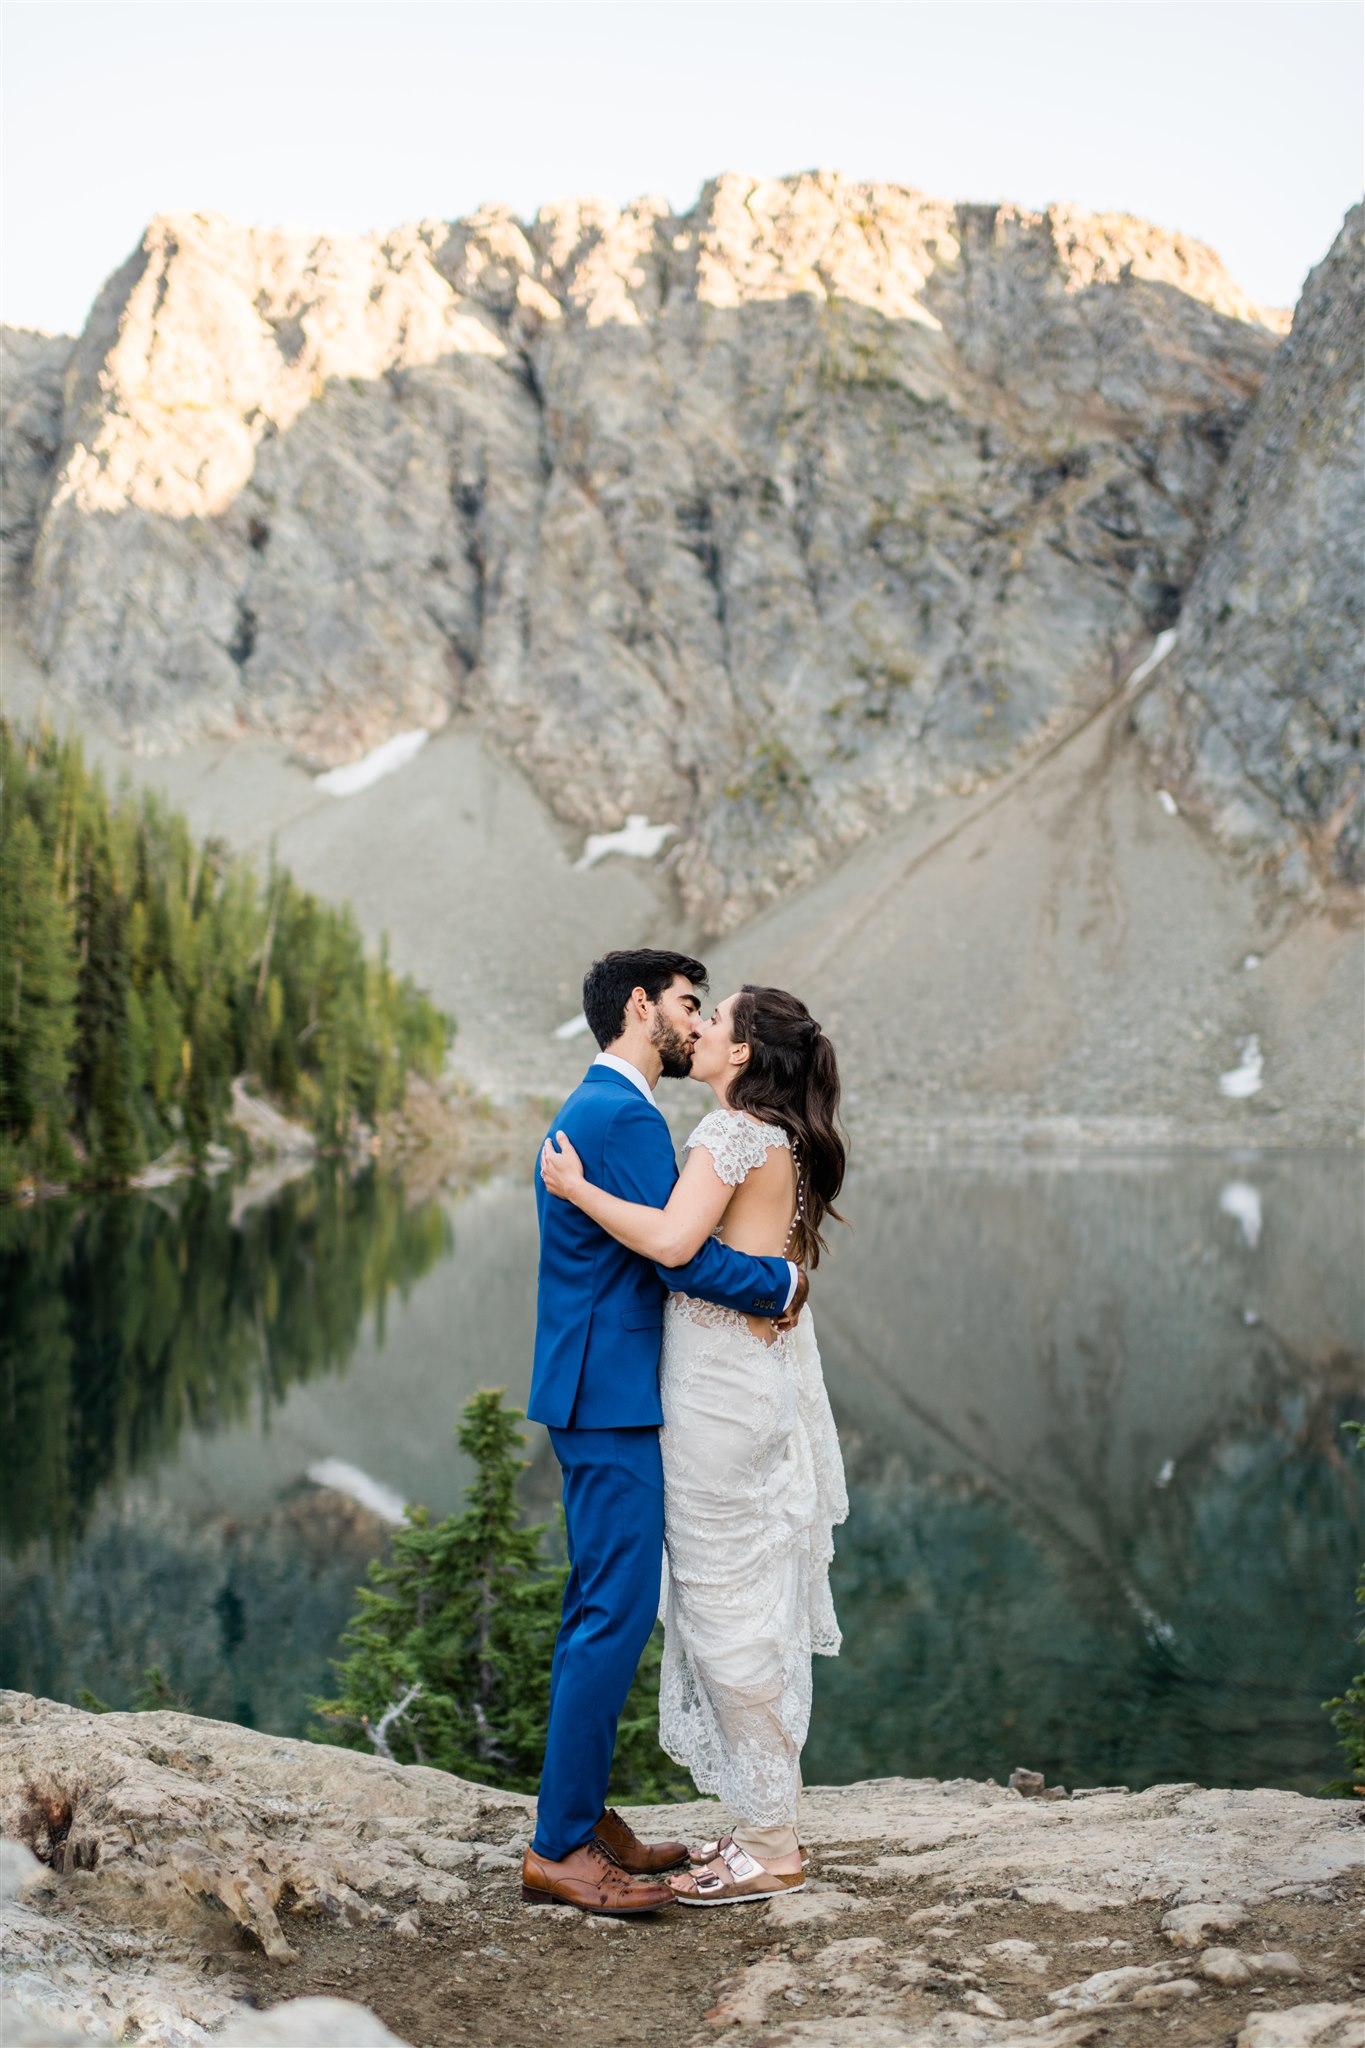 North Cascades adventure wedding, hiking wedding first dance by a mountain lake. Image by Forthright Photo.